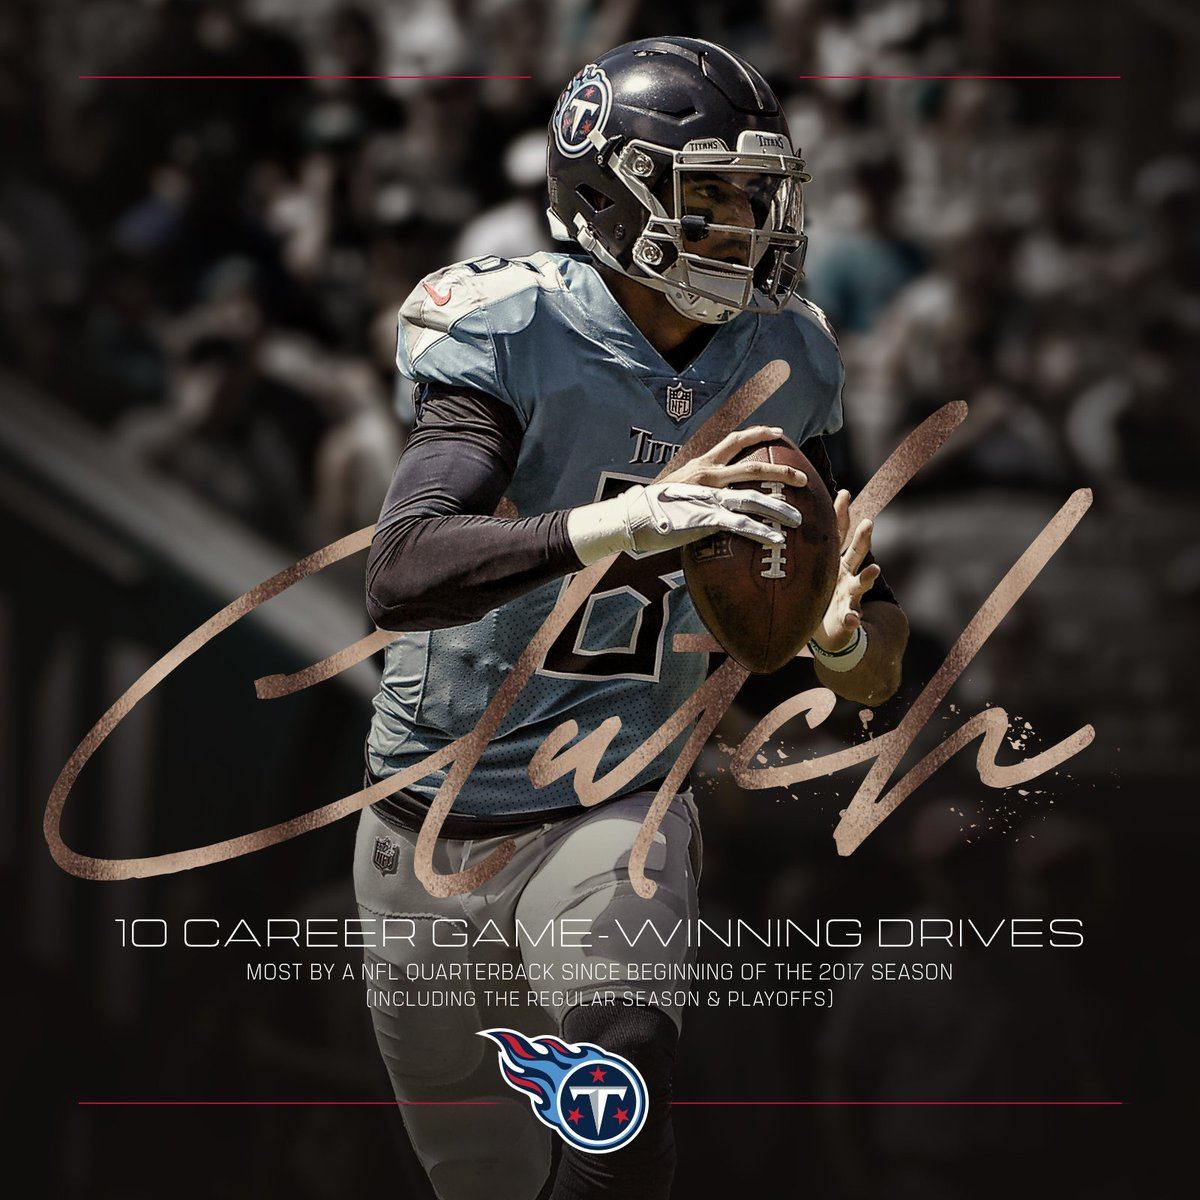 d543f141 Tennessee Titans on Twitter: